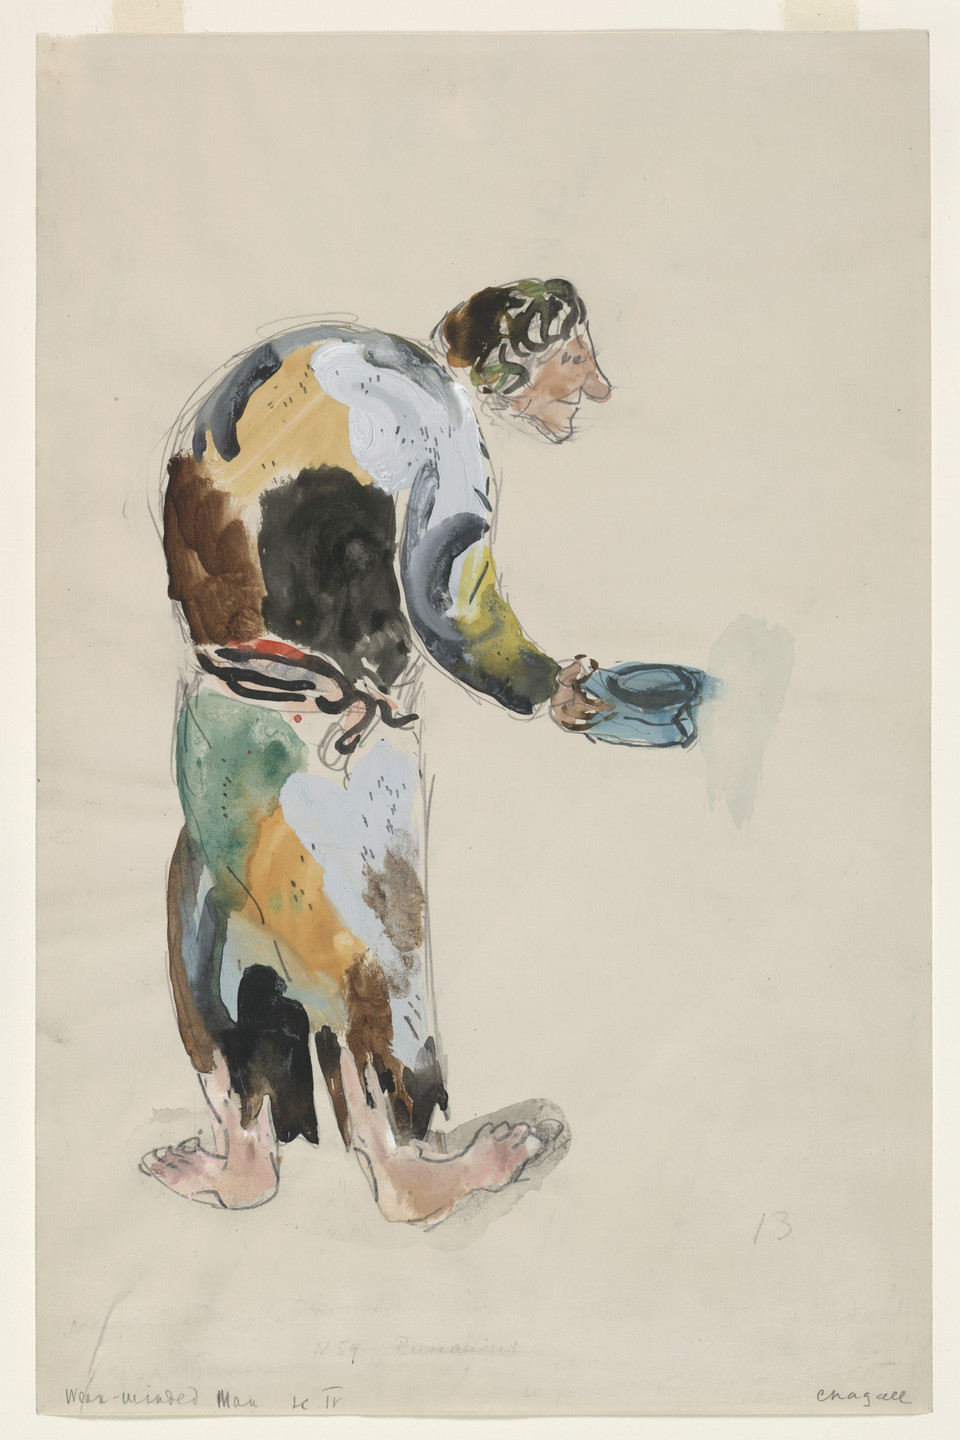 Marc Chagall. A Weak-Minded Man. Costume design for Scene IV of the ballet Aleko. 1942